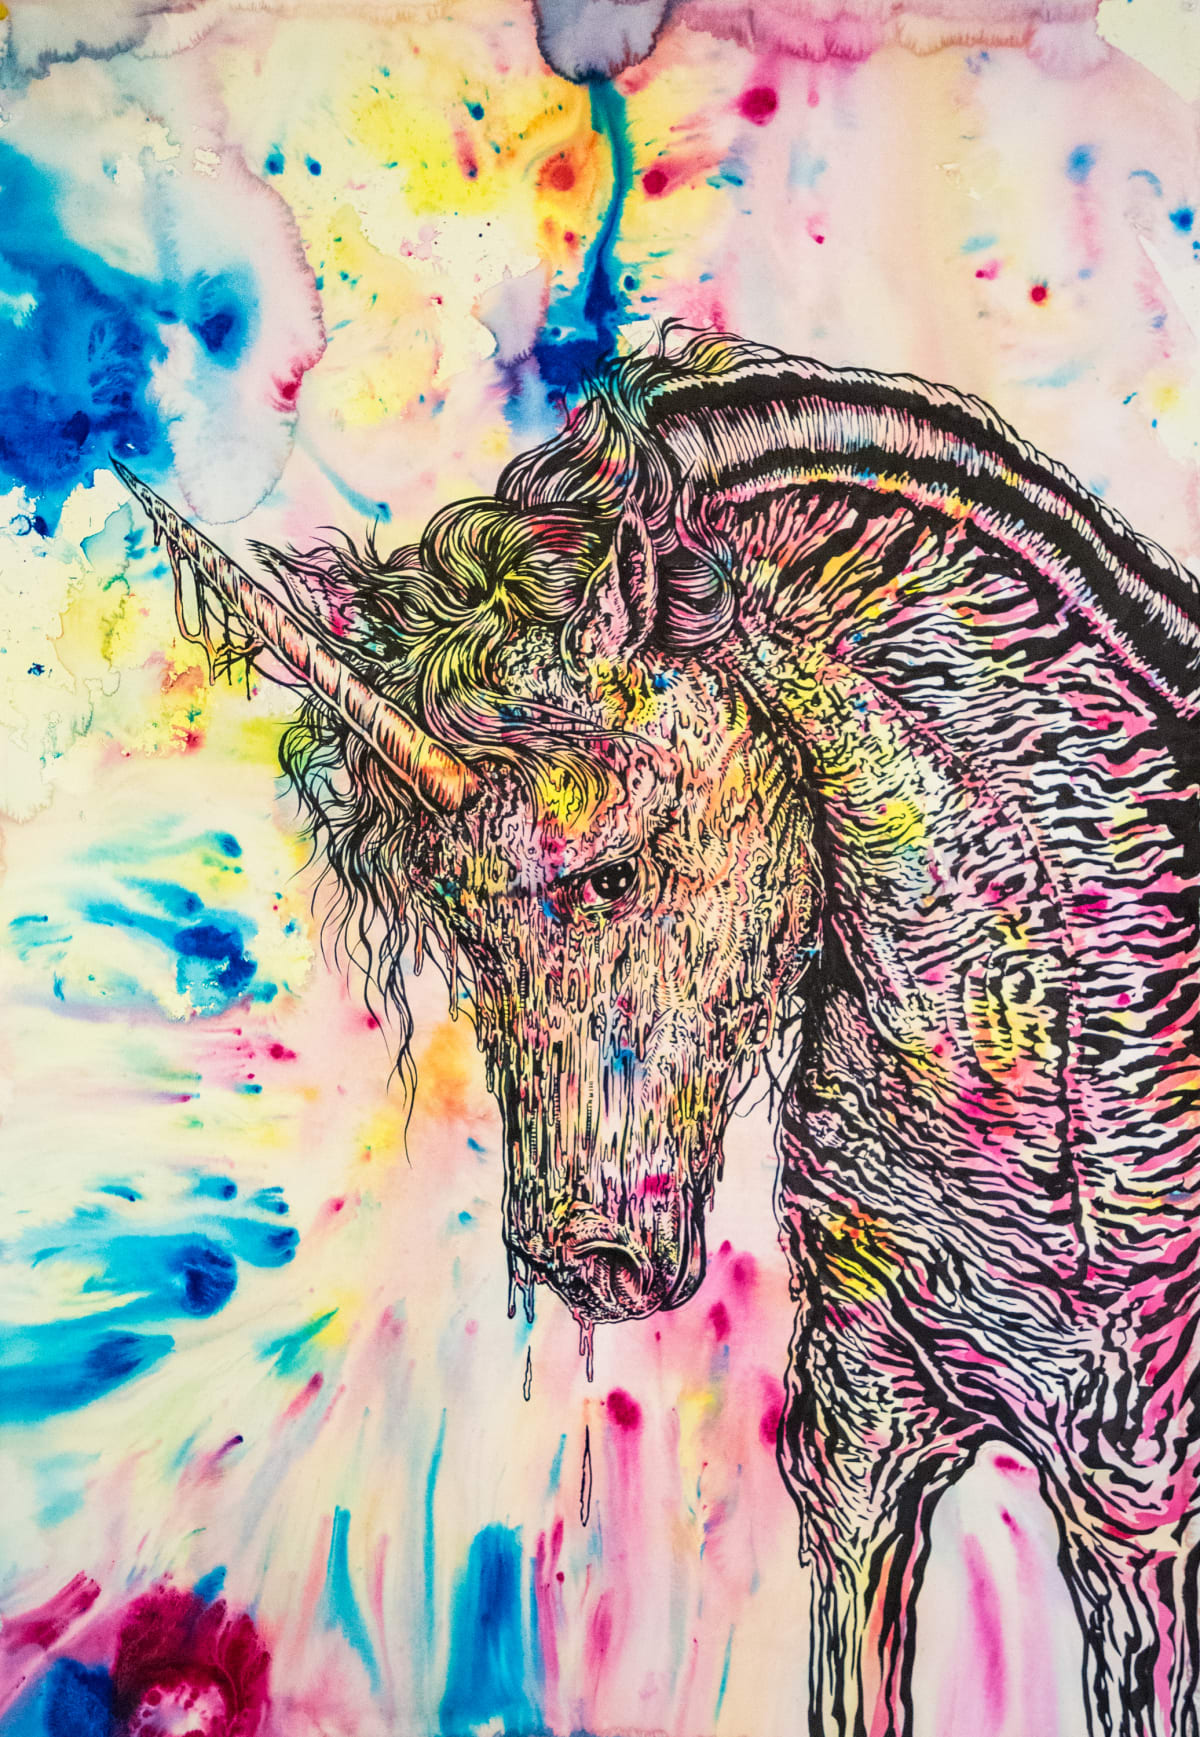 Todd Ryan White, Dispirit Animal (Melting Unicorn), 2019